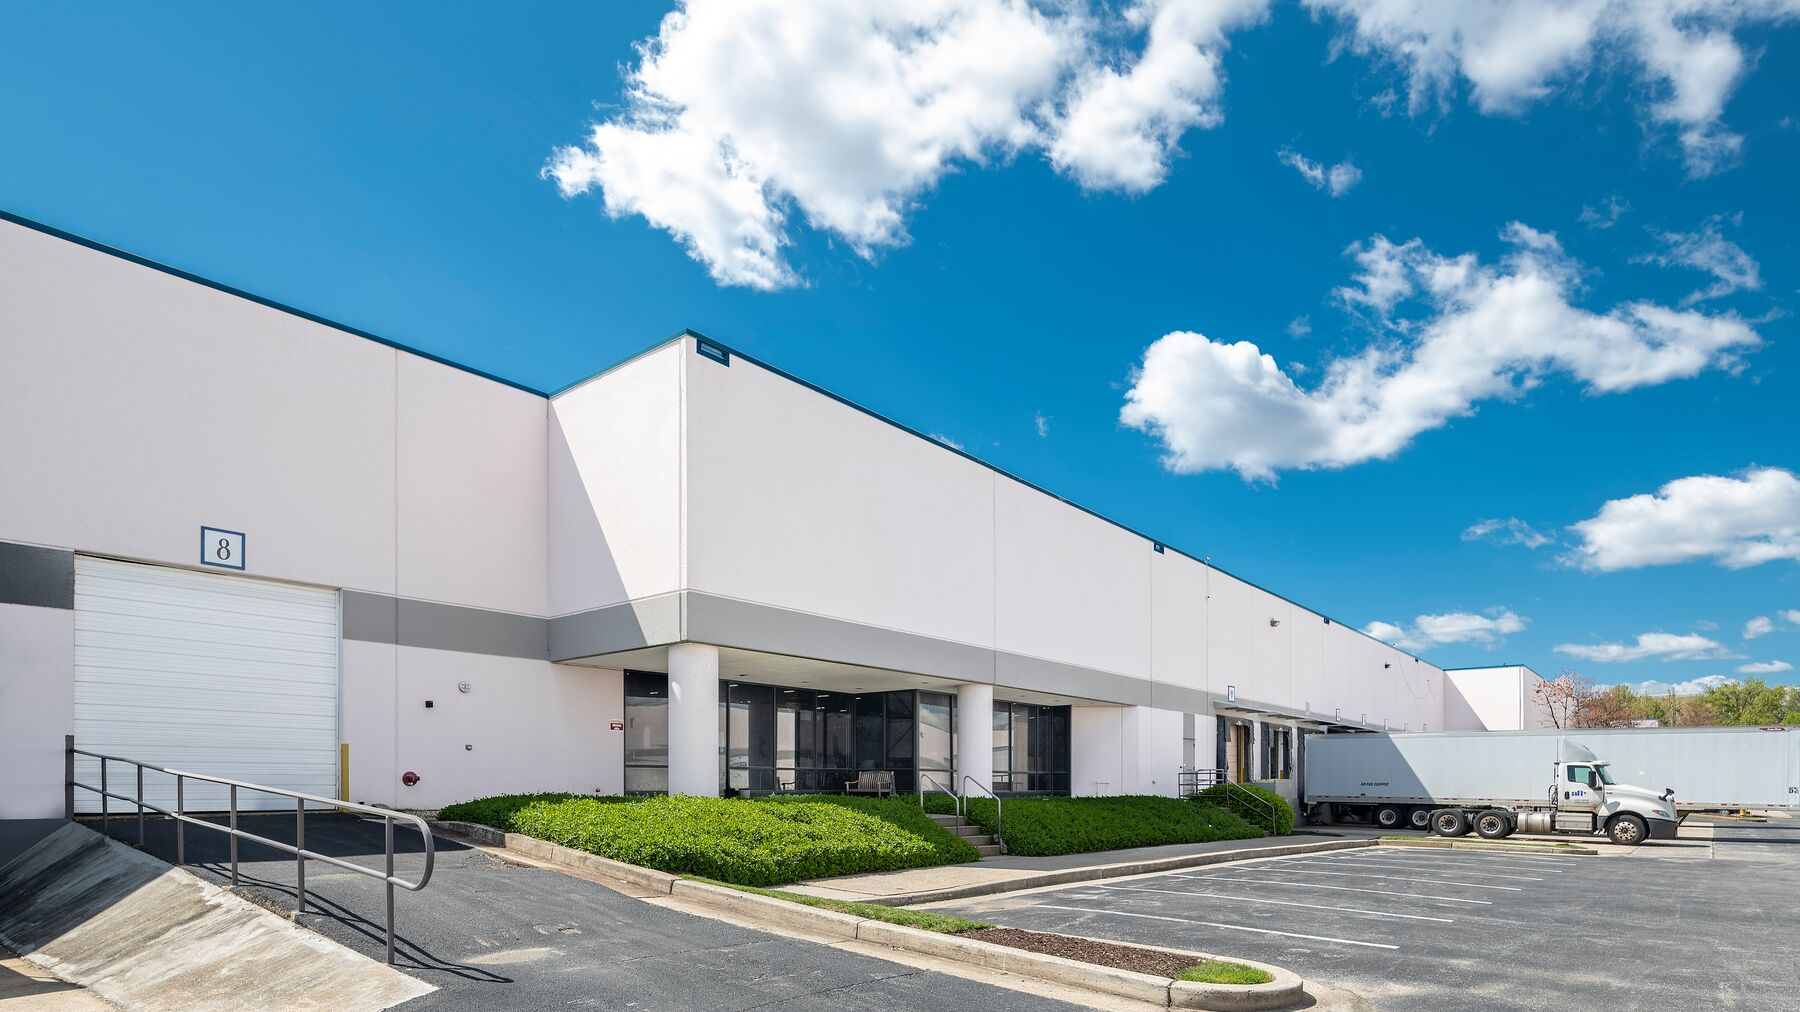 DPM-Prologis-Baltimore-Washington-Industrial-Park-10_-05.jpg